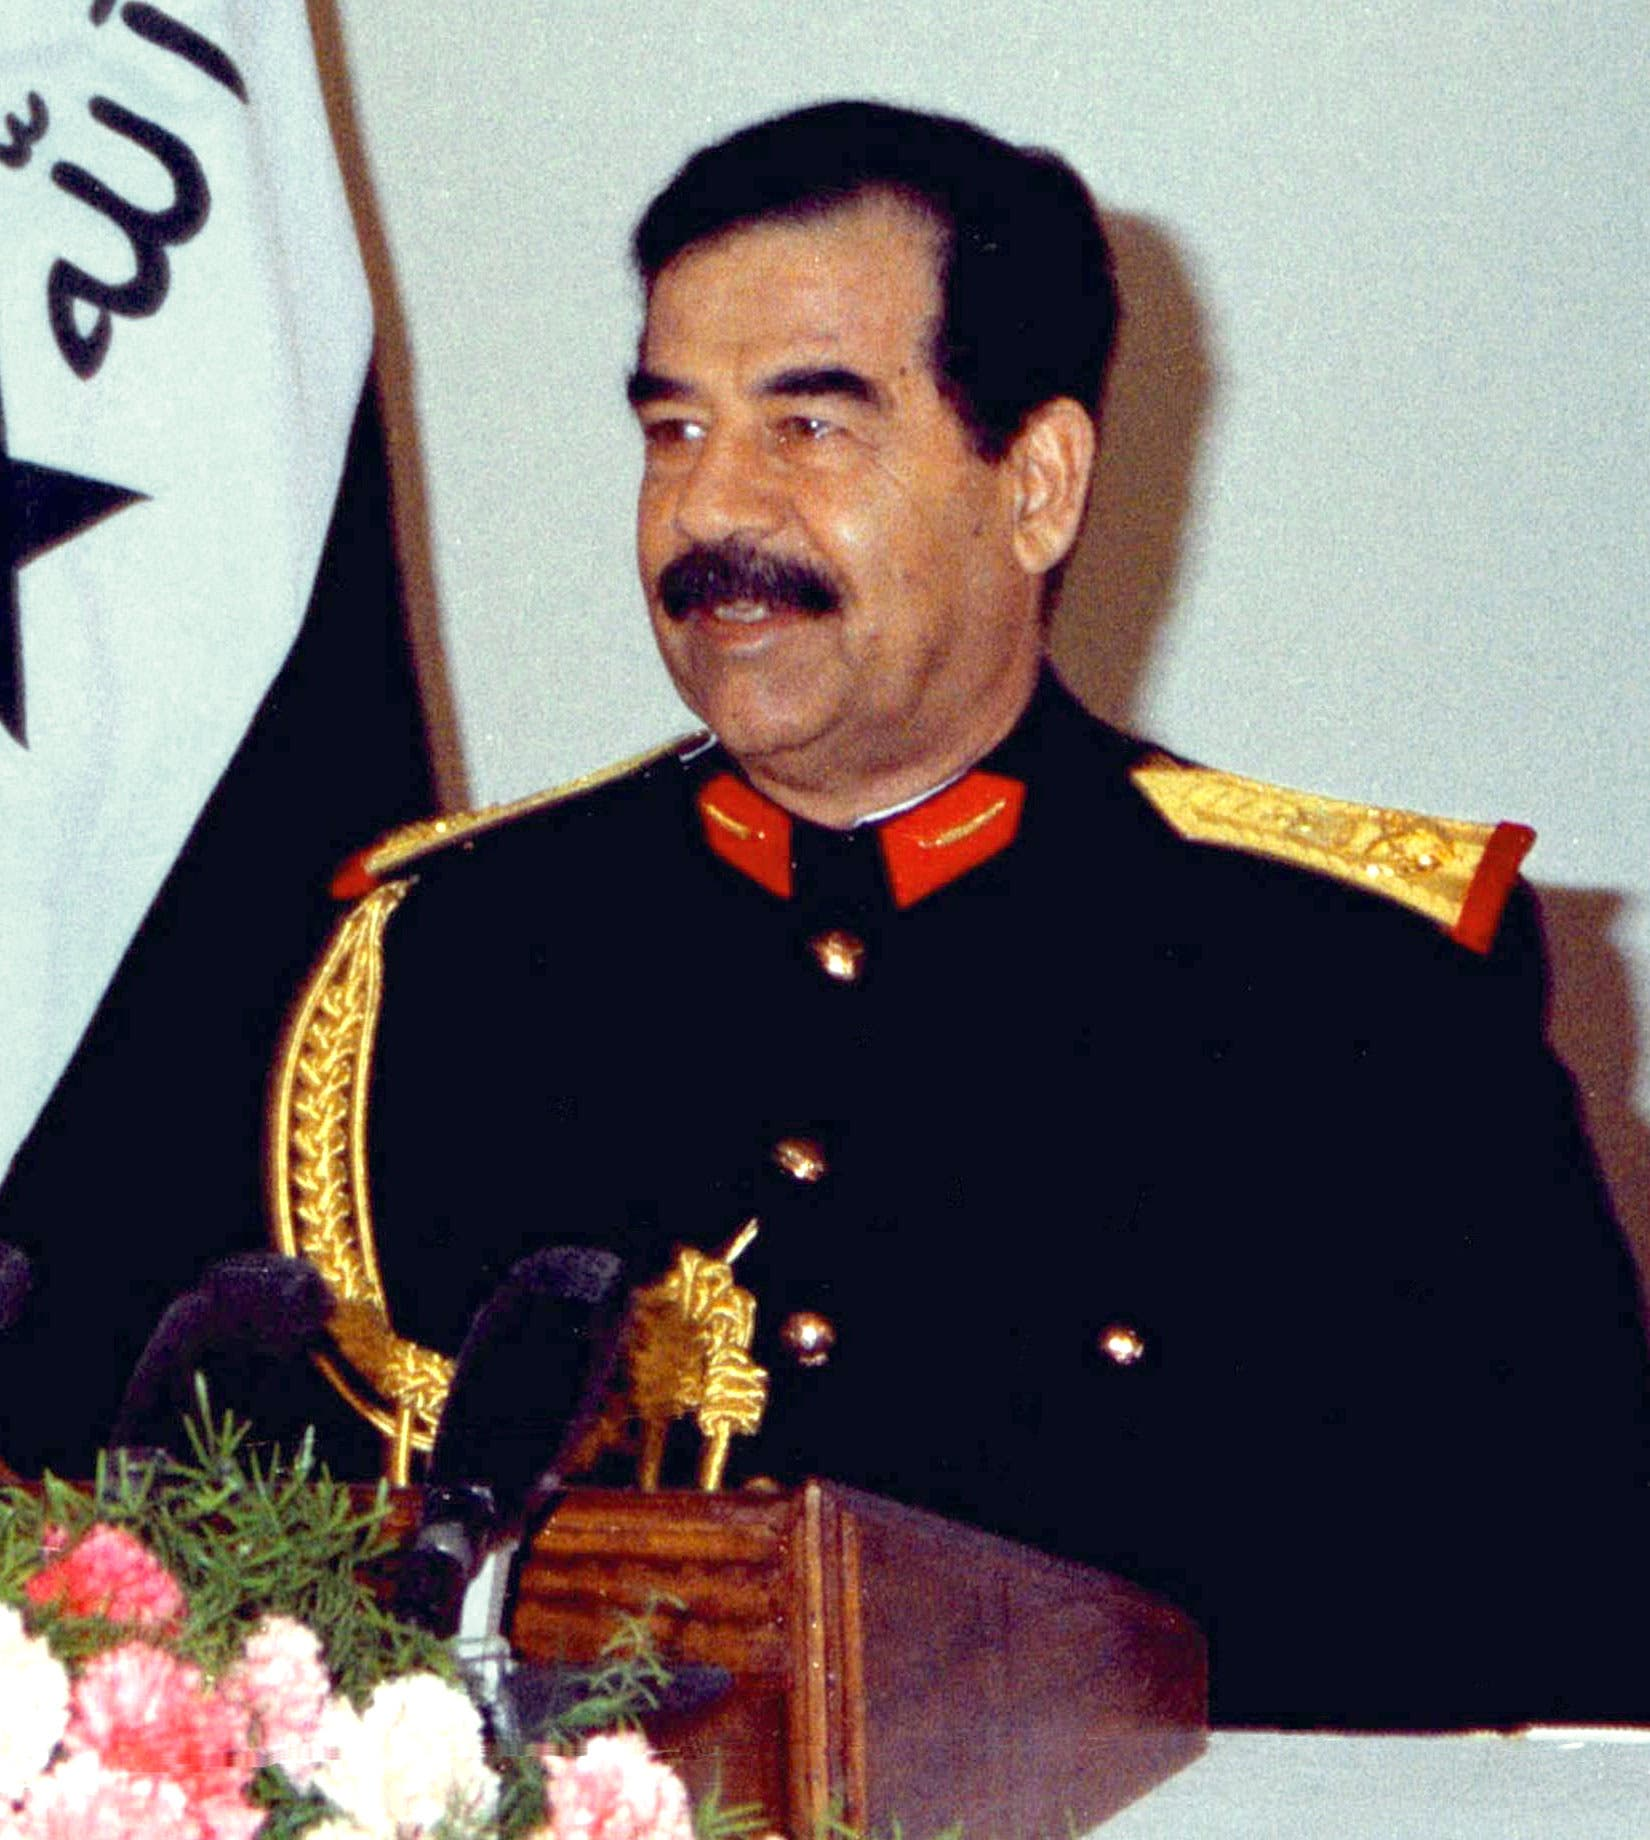 Iraqi President Saddam Hussein speaking during a 1997 address marking the 76th anniversary of the Iraqi forces (File photo Reuters)